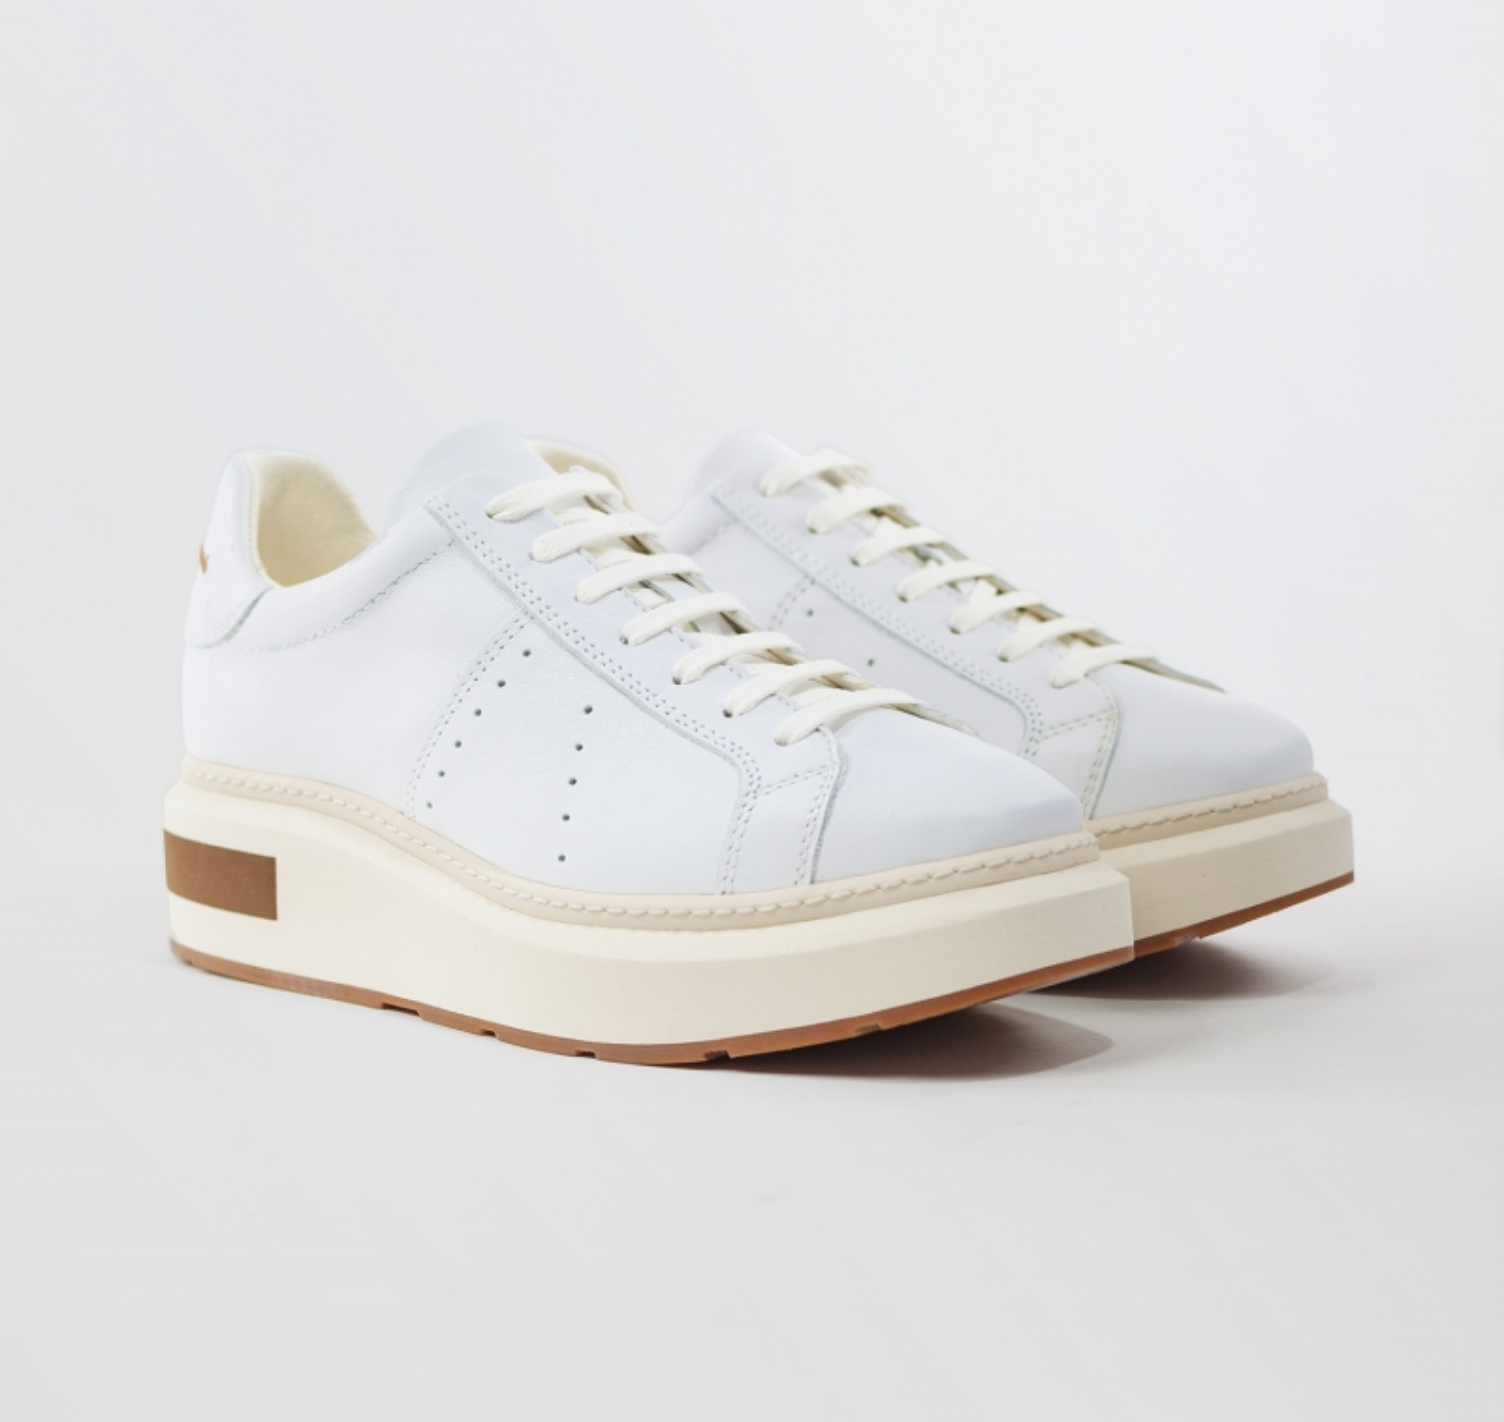 Paloma Barcelo Carier Sneakers